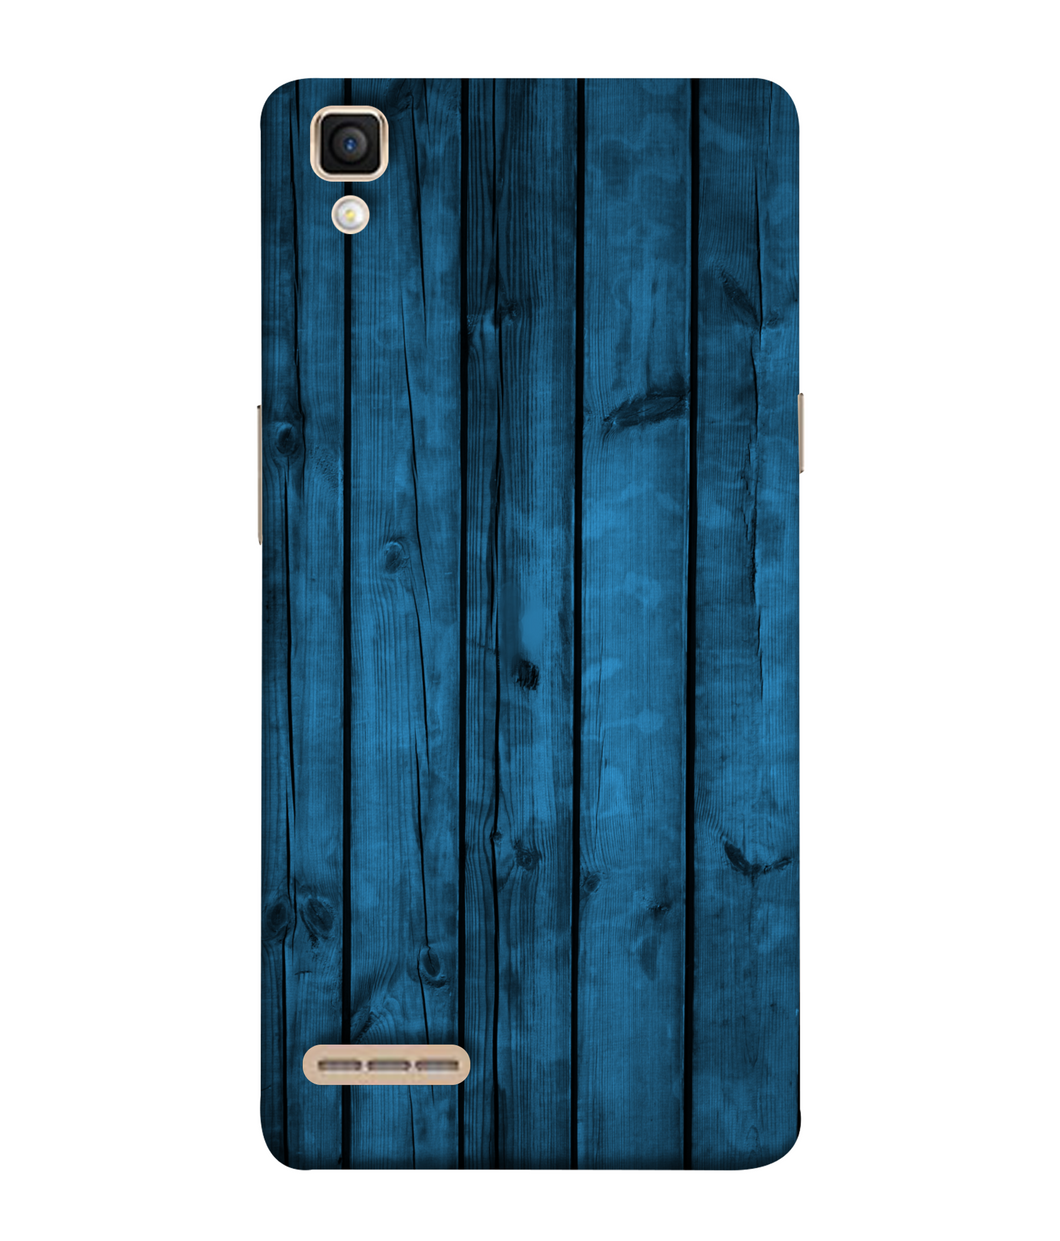 Oppo F1 Bluewood mobile cover